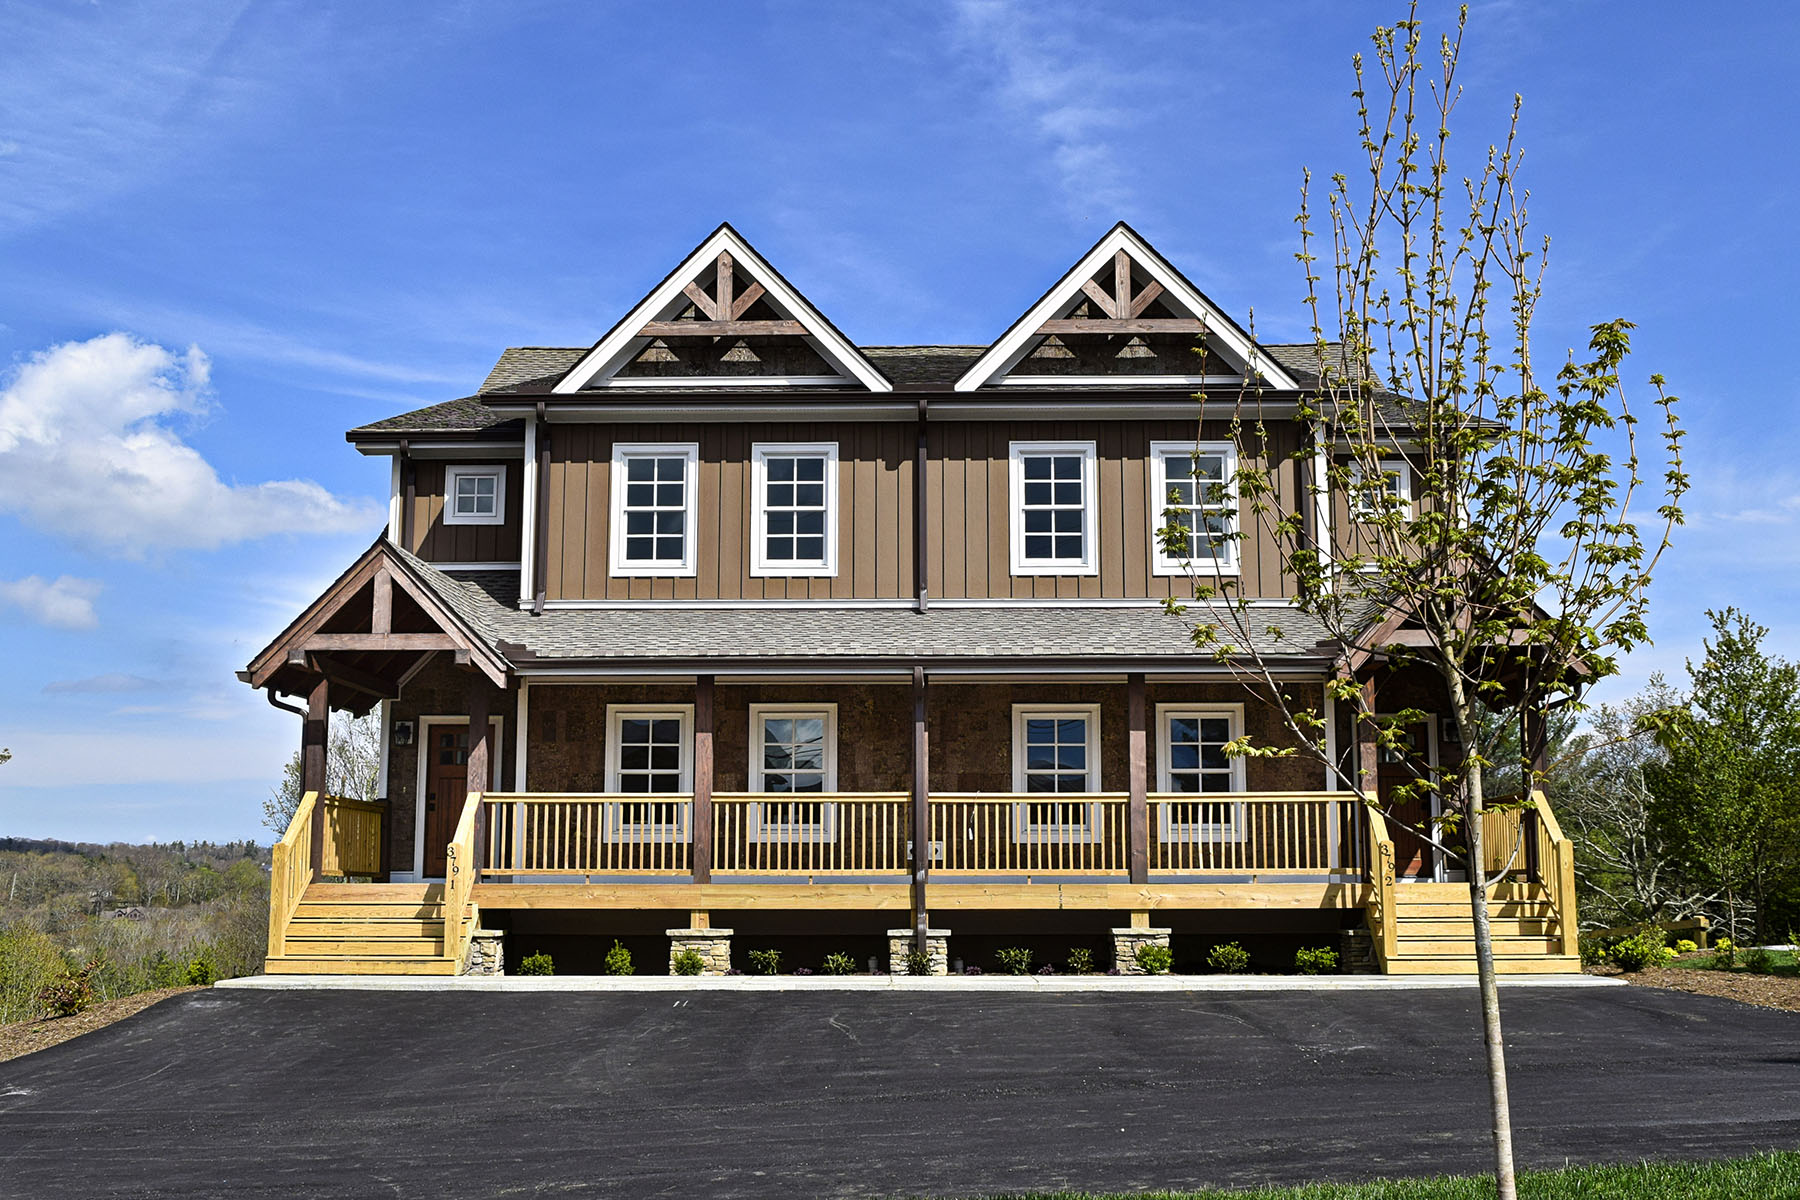 Single Family Homes for Active at THE TOWNES AT BLOWING ROCK 375 Chestnut Dr , 1 Blowing Rock, North Carolina 28605 United States